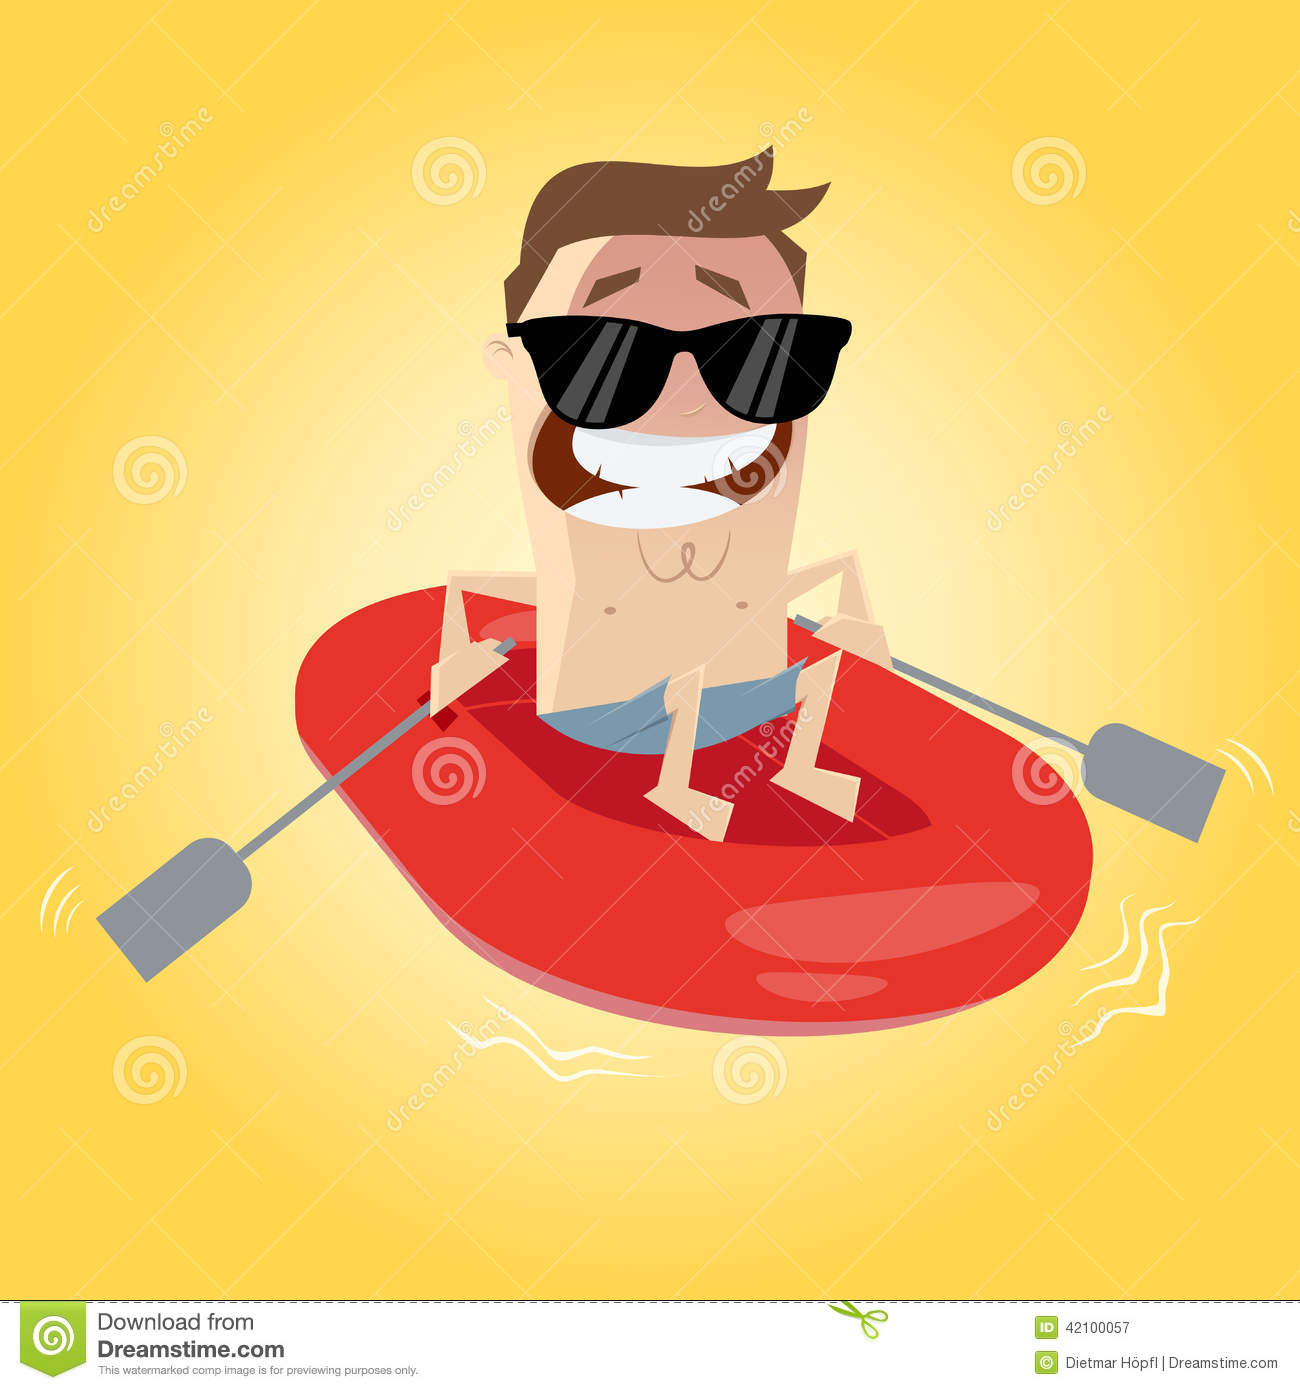 Funny Cartoon Man In Rubber Boat Stock Vector Image